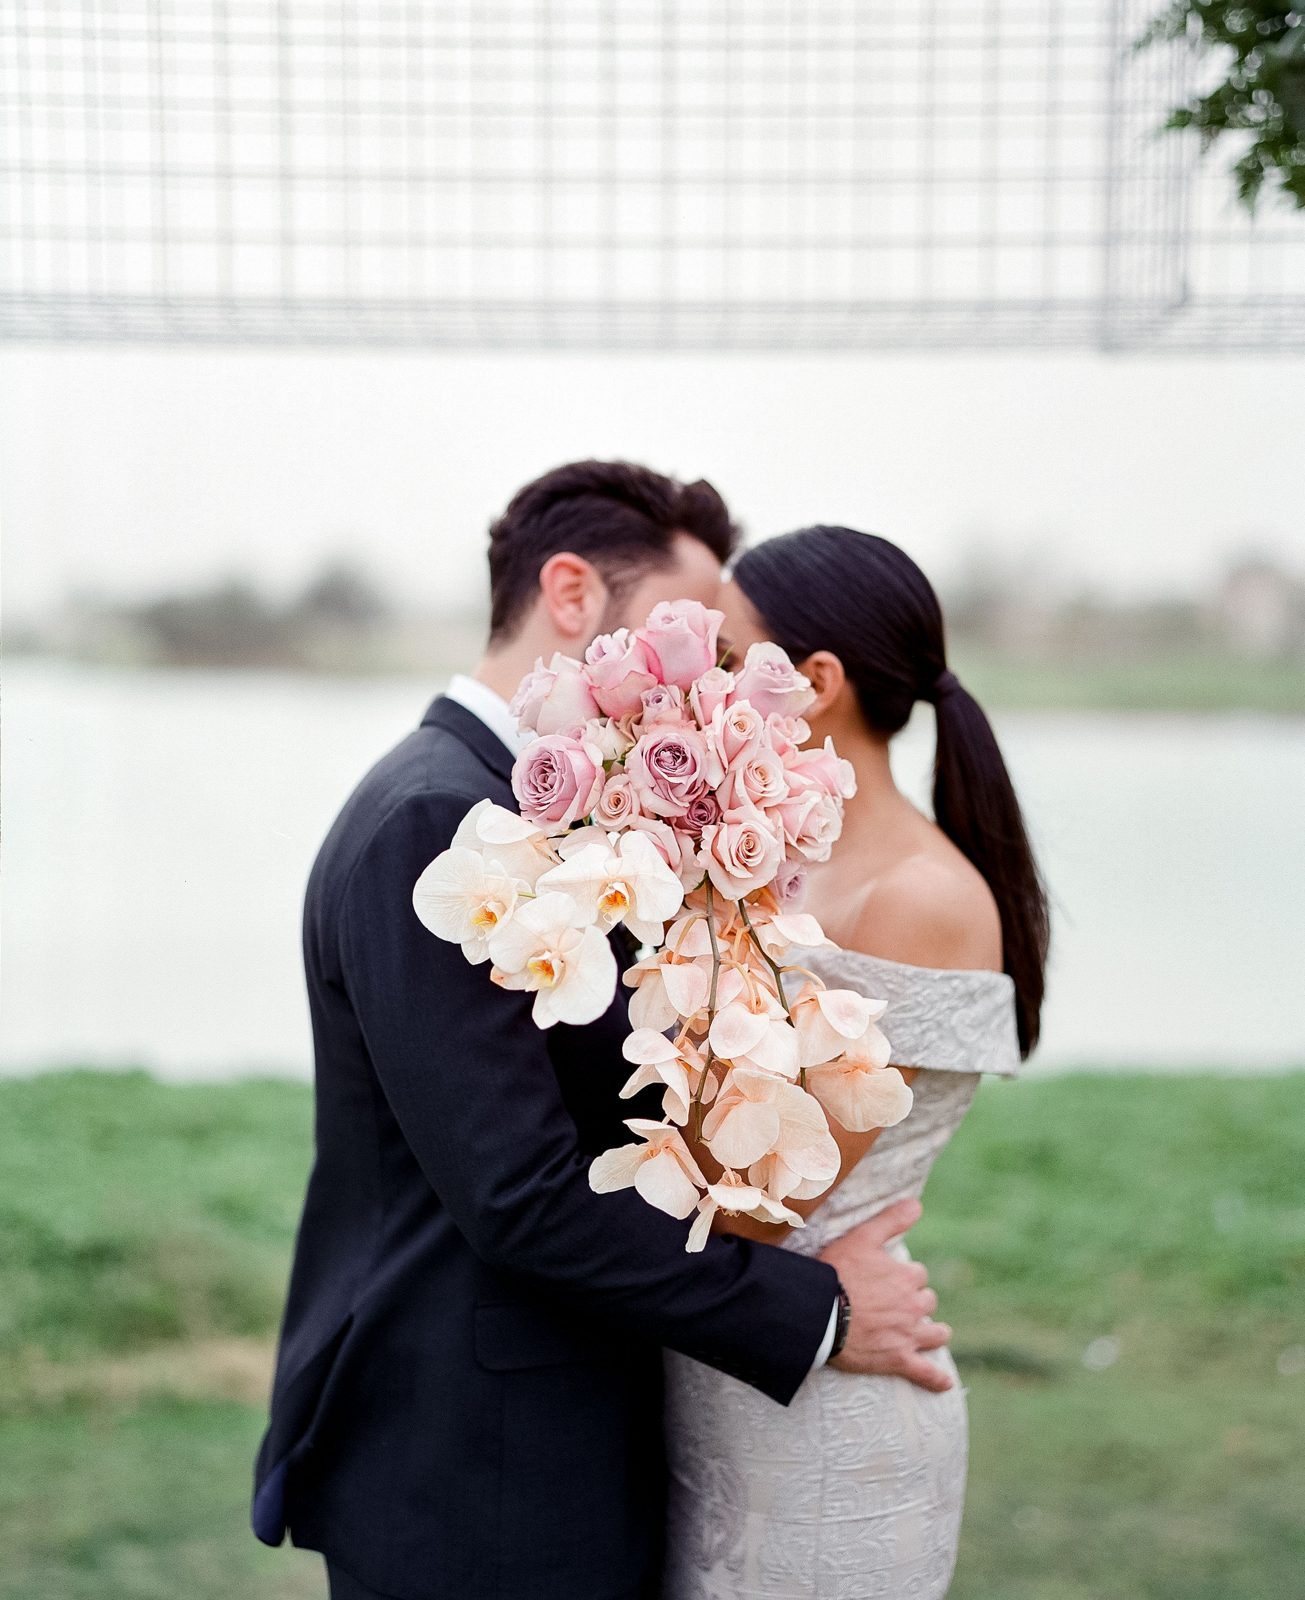 Bride and Groom kissing with bouquet of flowers